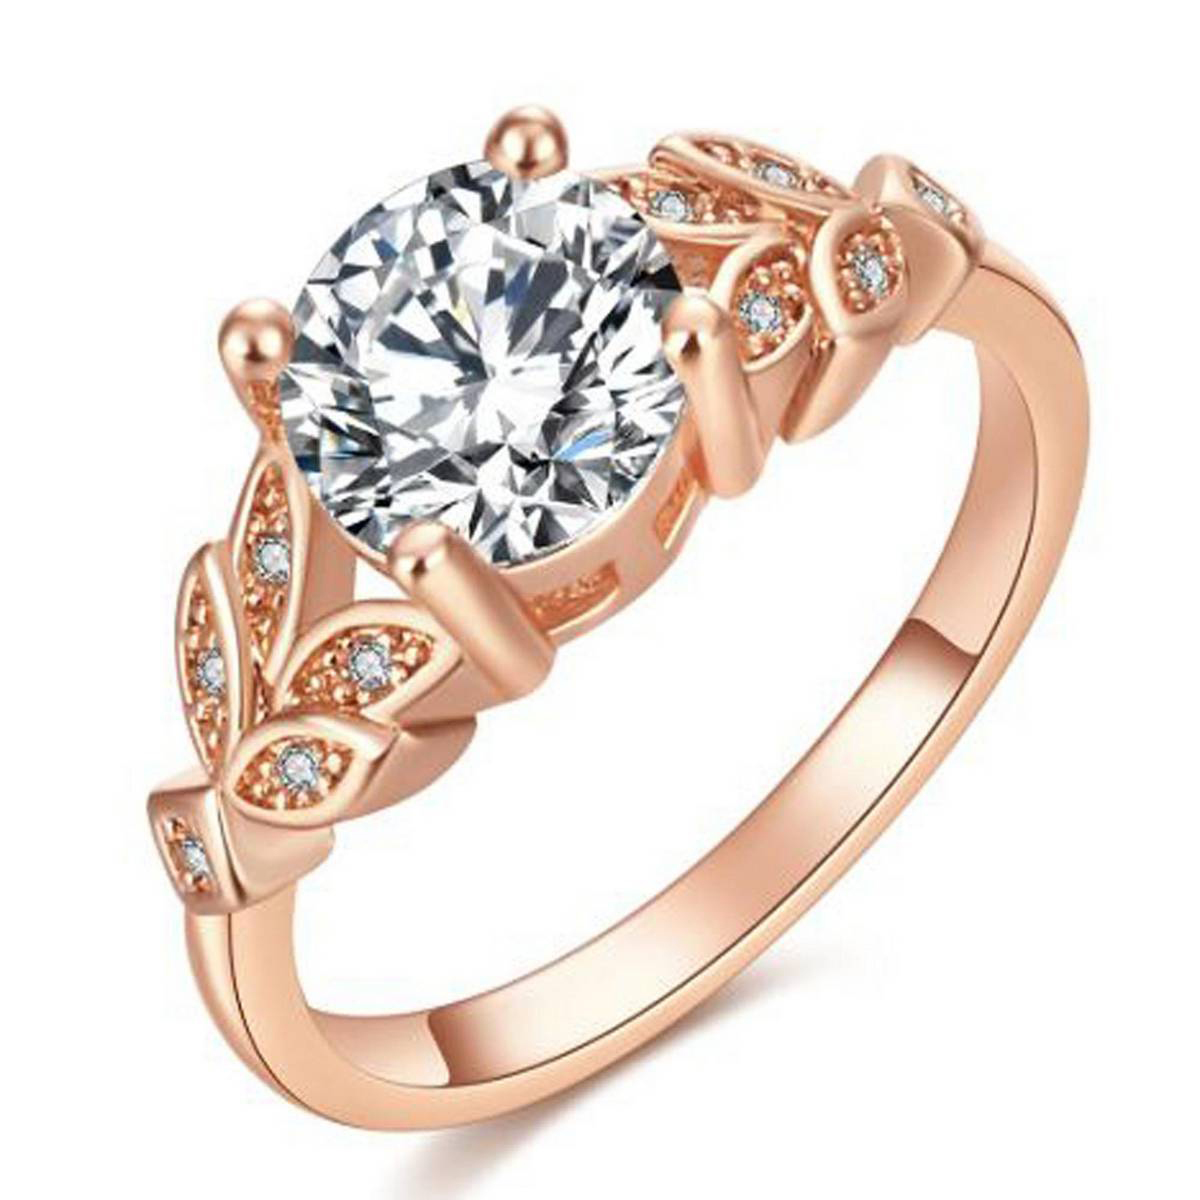 Fashion Elegant Silver Ring Crystal Rings for Women Girls Wedding Rings Engagement Anniversary Leaf Cubic Zircon Ring Jewelry